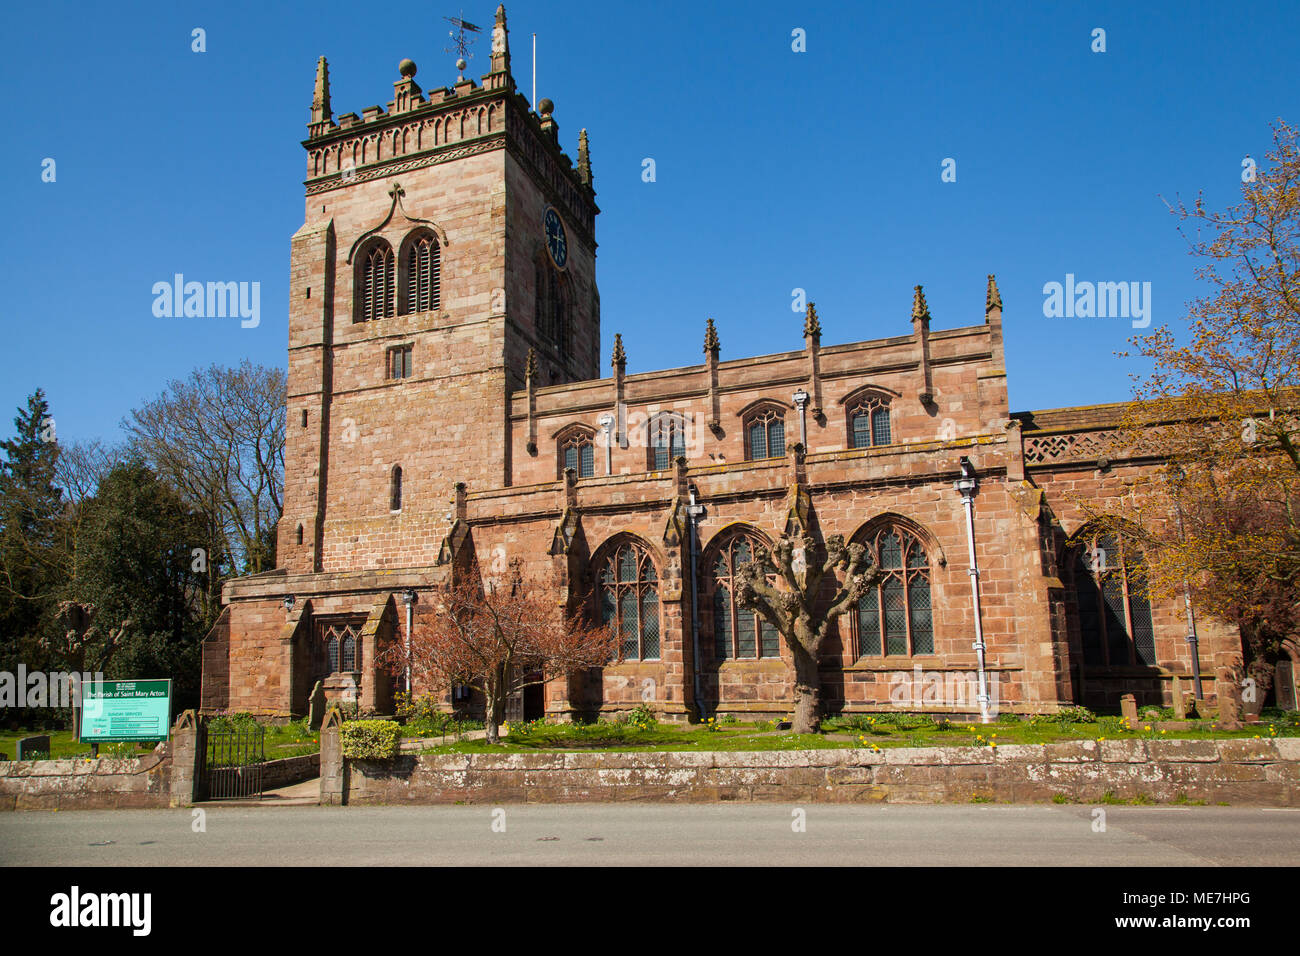 St Mary's church of England parish church at Acton Nantwich Cheshire with blue skies sky it has the tallest tower of any Cheshire church - Stock Image